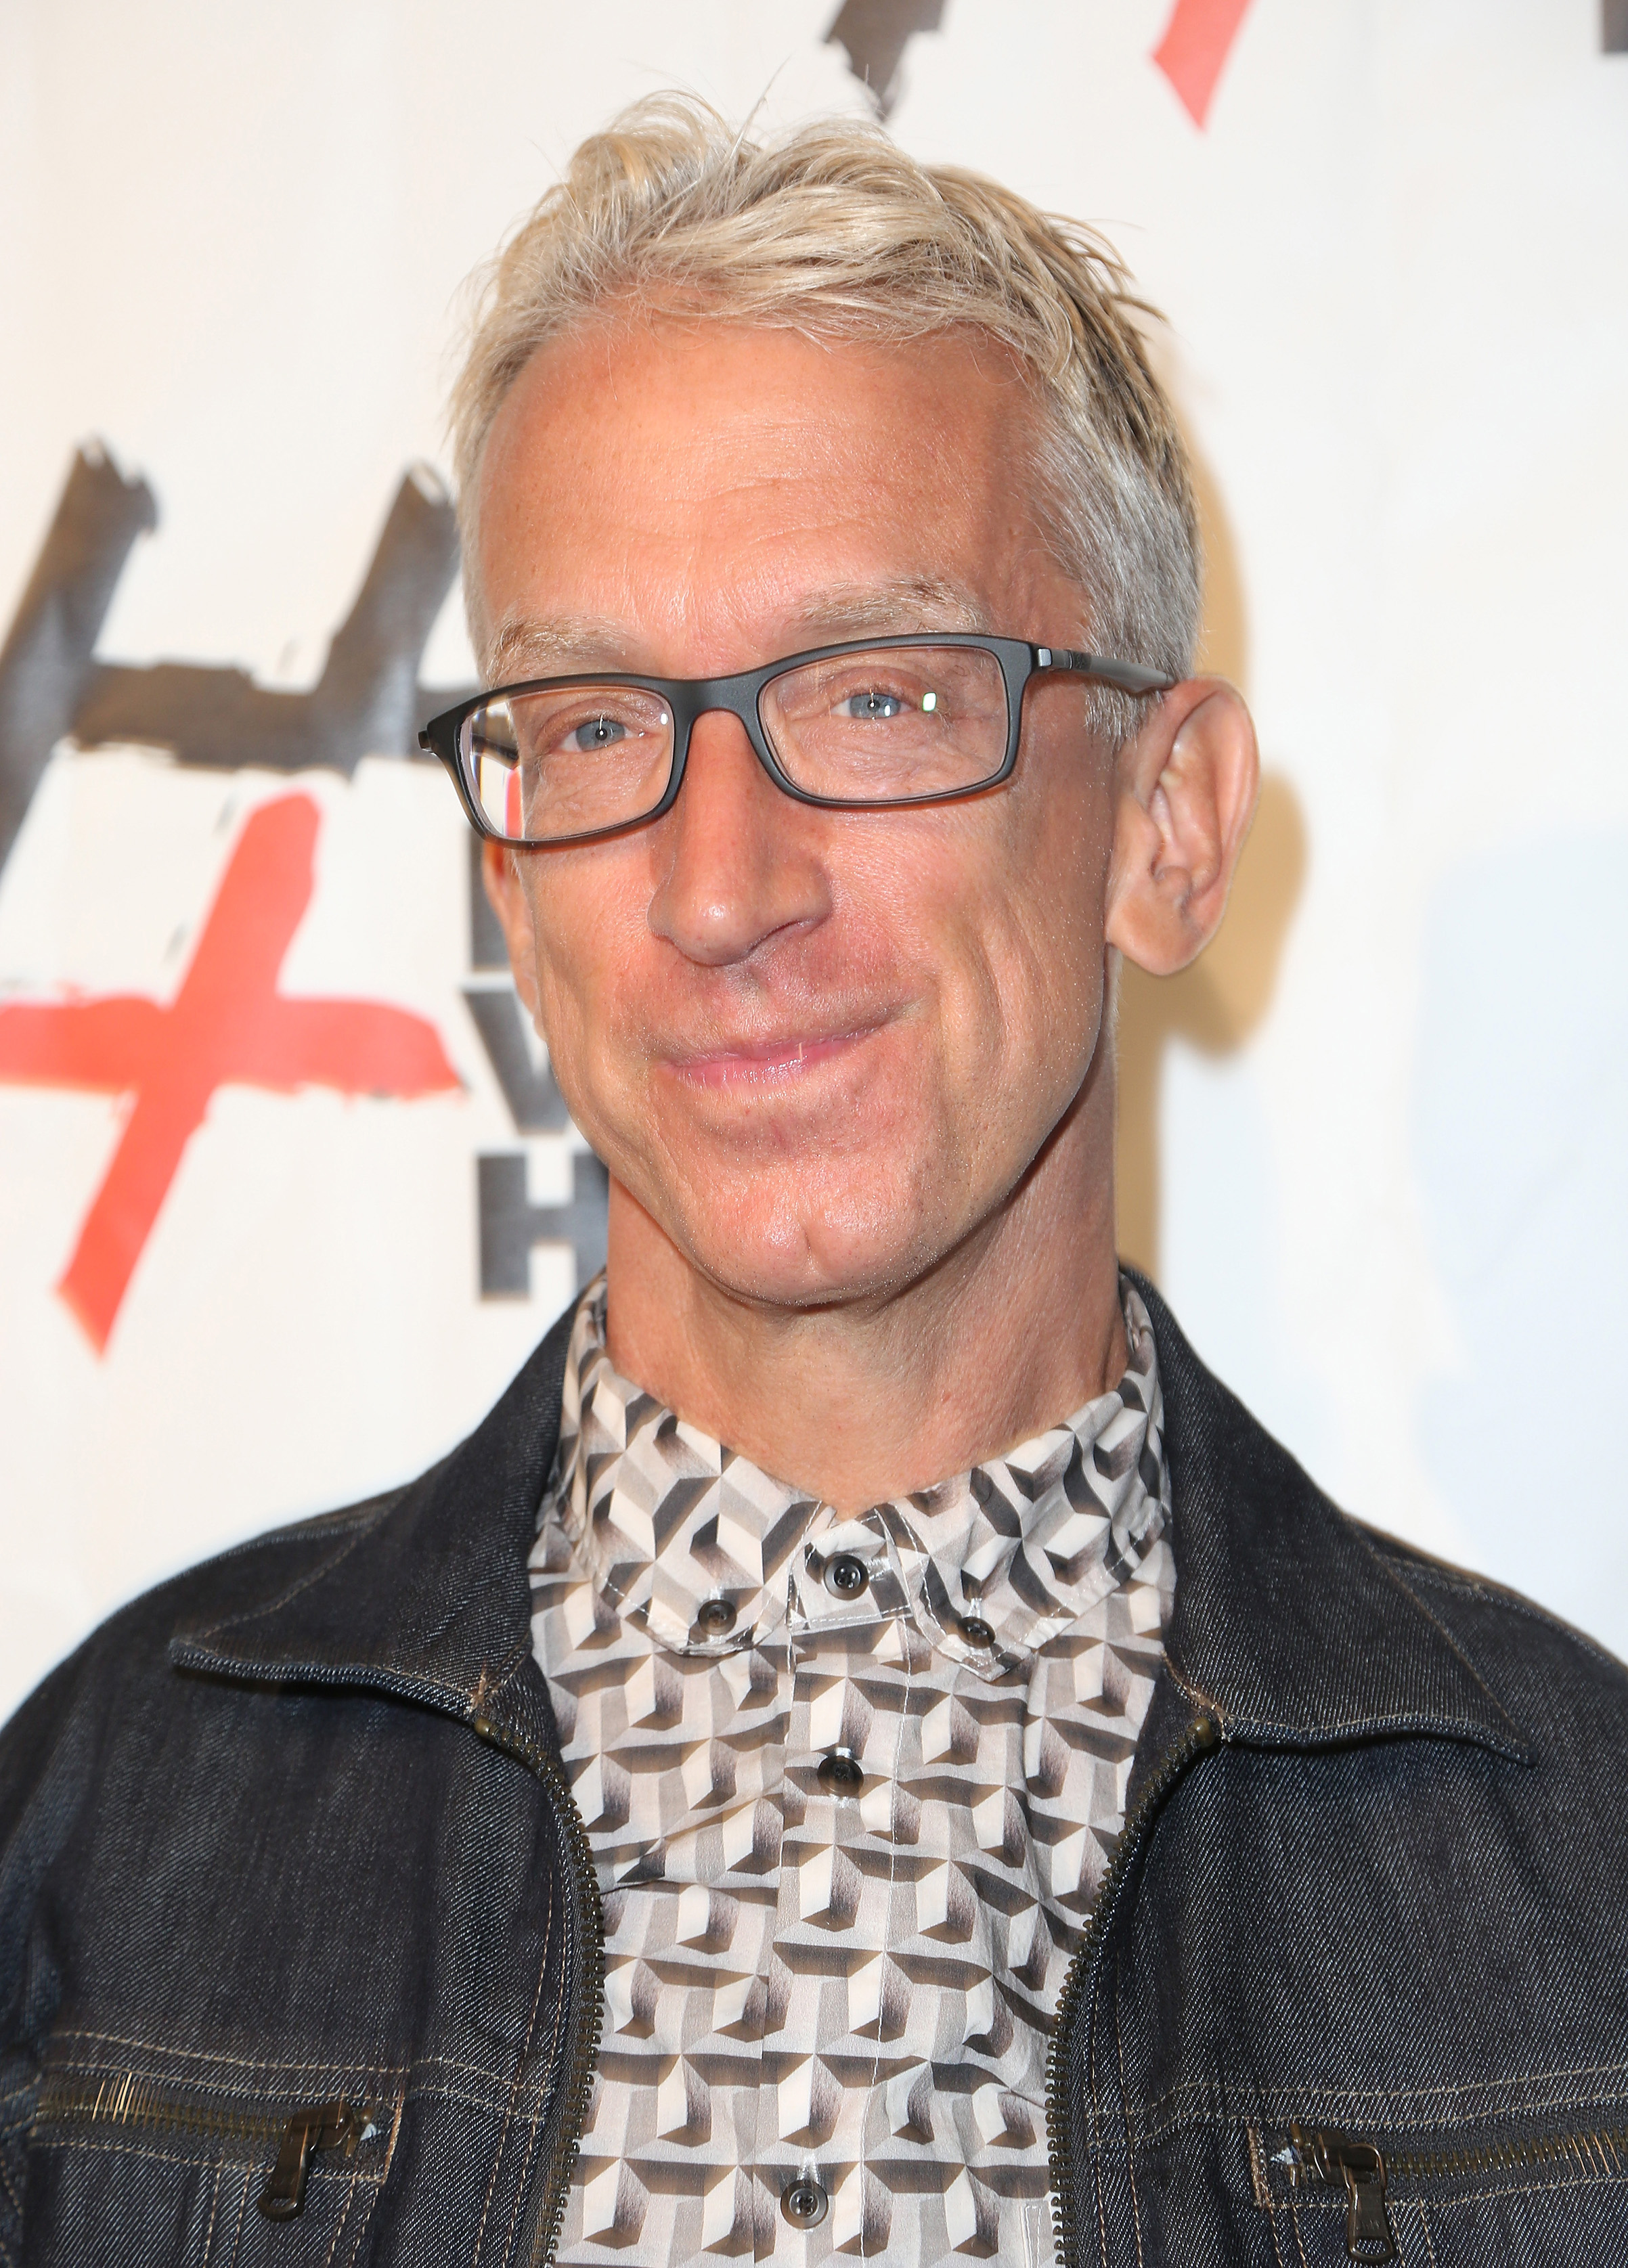 Comedian Andy Dick attends #NotWithHim Event in Los Angeles, on Aug. 19, 2016.